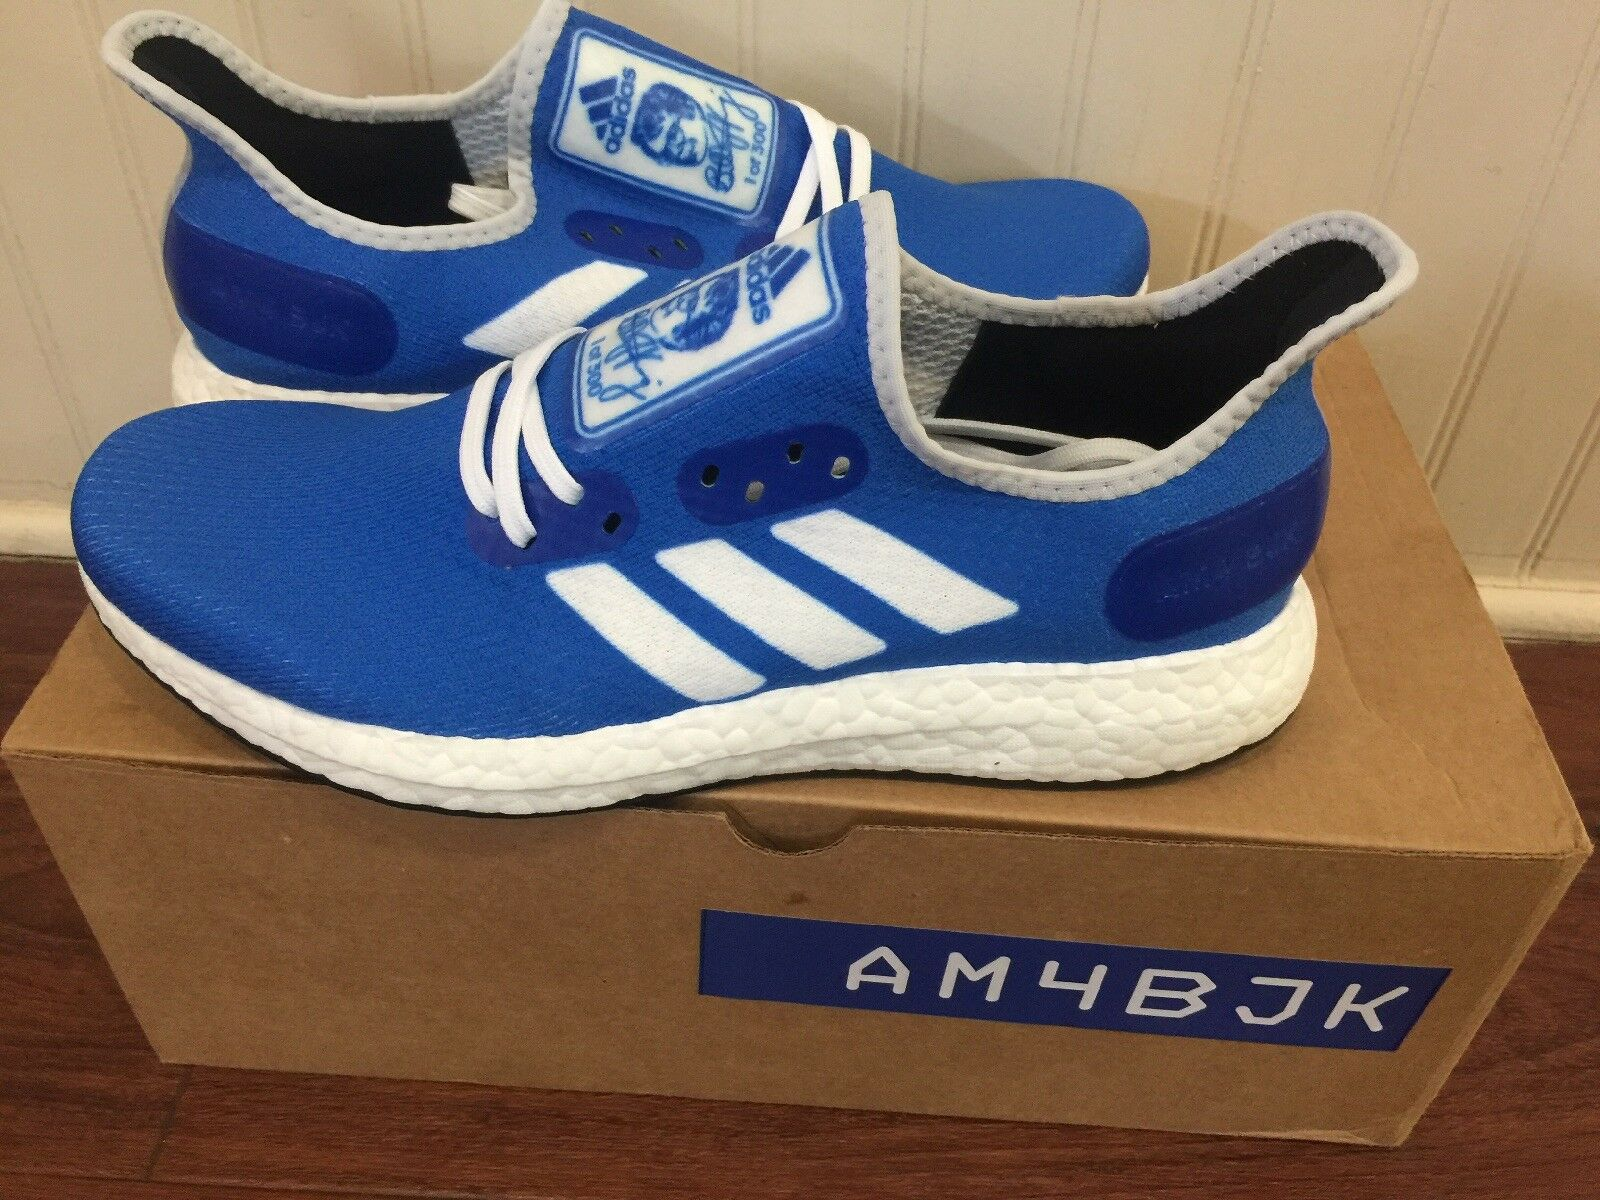 ADIDAS SPEEDFACTORY AM4BJK (BILLIE JEAN KING) SIZE 8, 1 OF ONLY 300 MADE